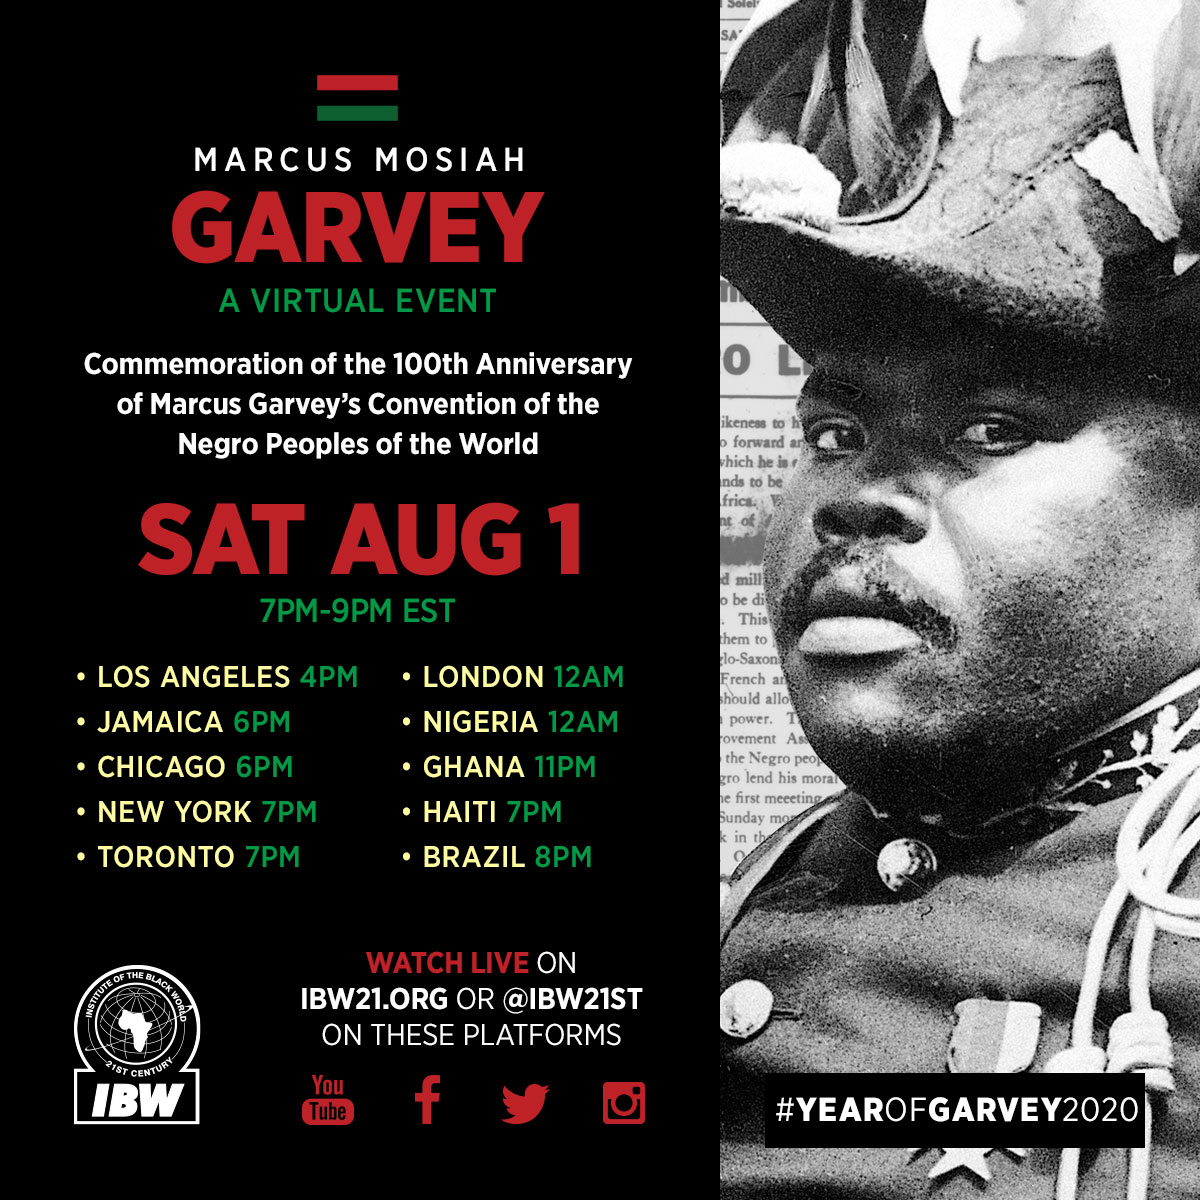 Marcus Mosiah Garvey, A Virtual Event. Commemoration of the 100th Anniversary of Marcus Garvey's Convention of the Negro Peoples of the World. August 1, 2020, 7PM - 9PM EST